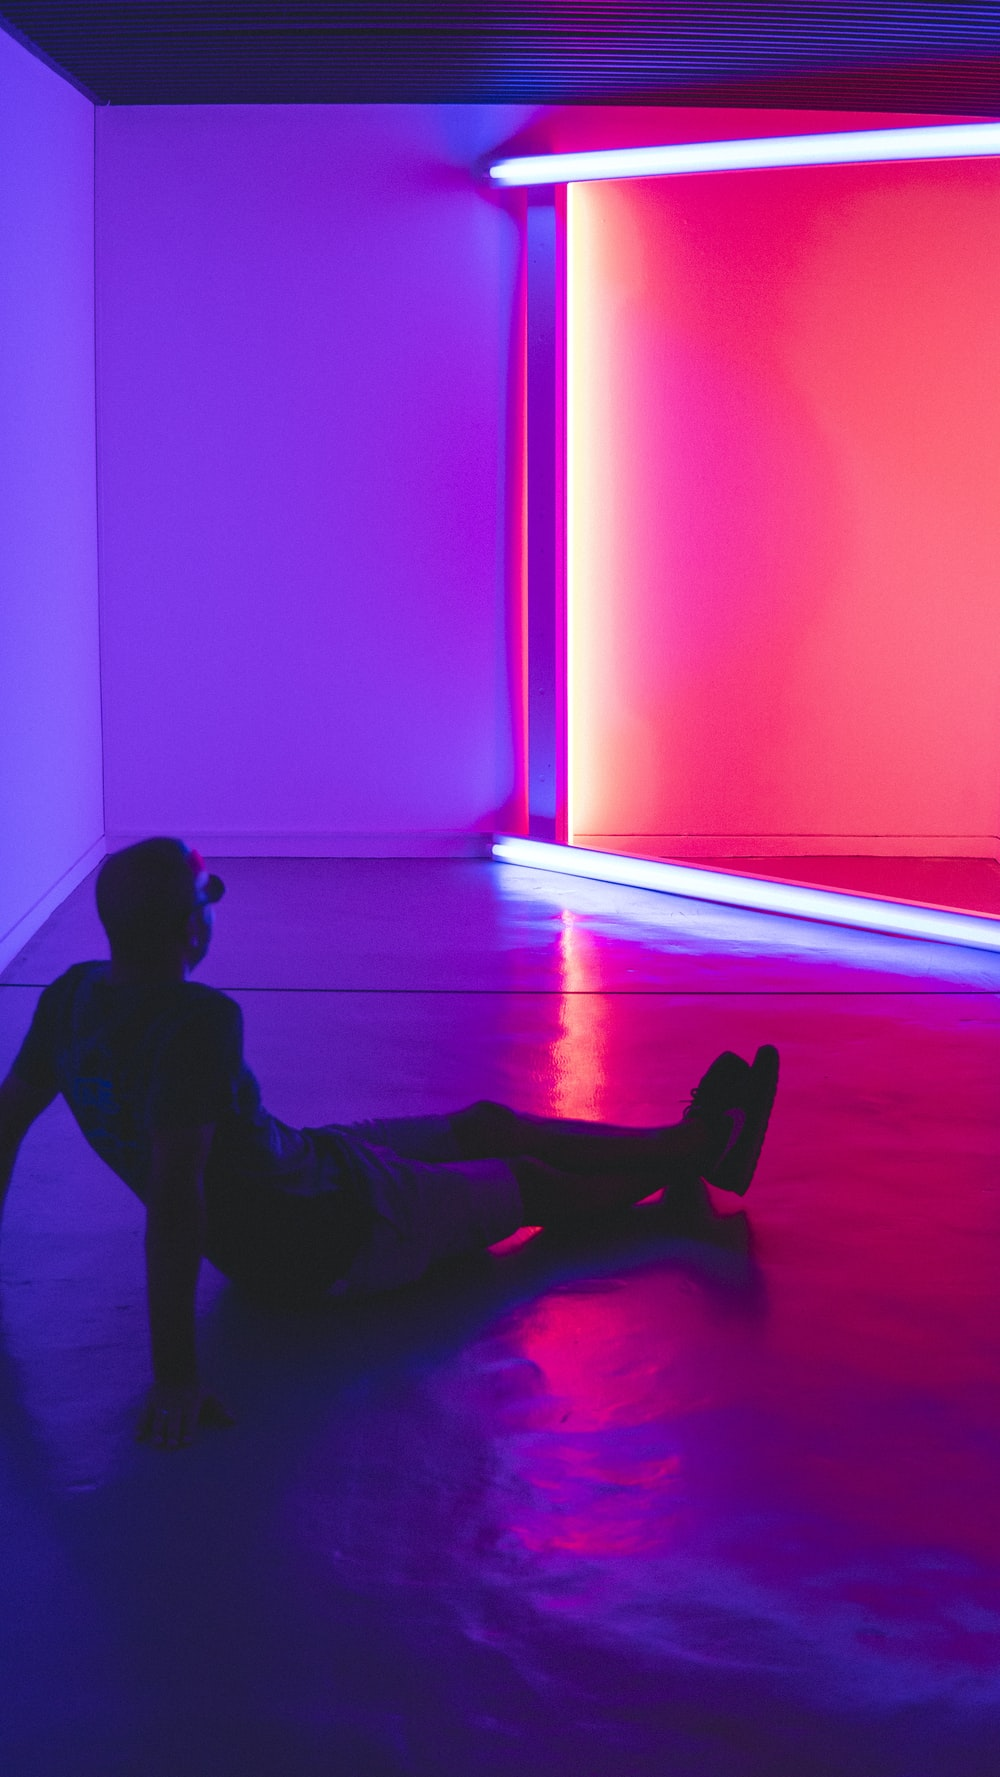 man sitting on floor facing a lighted room area